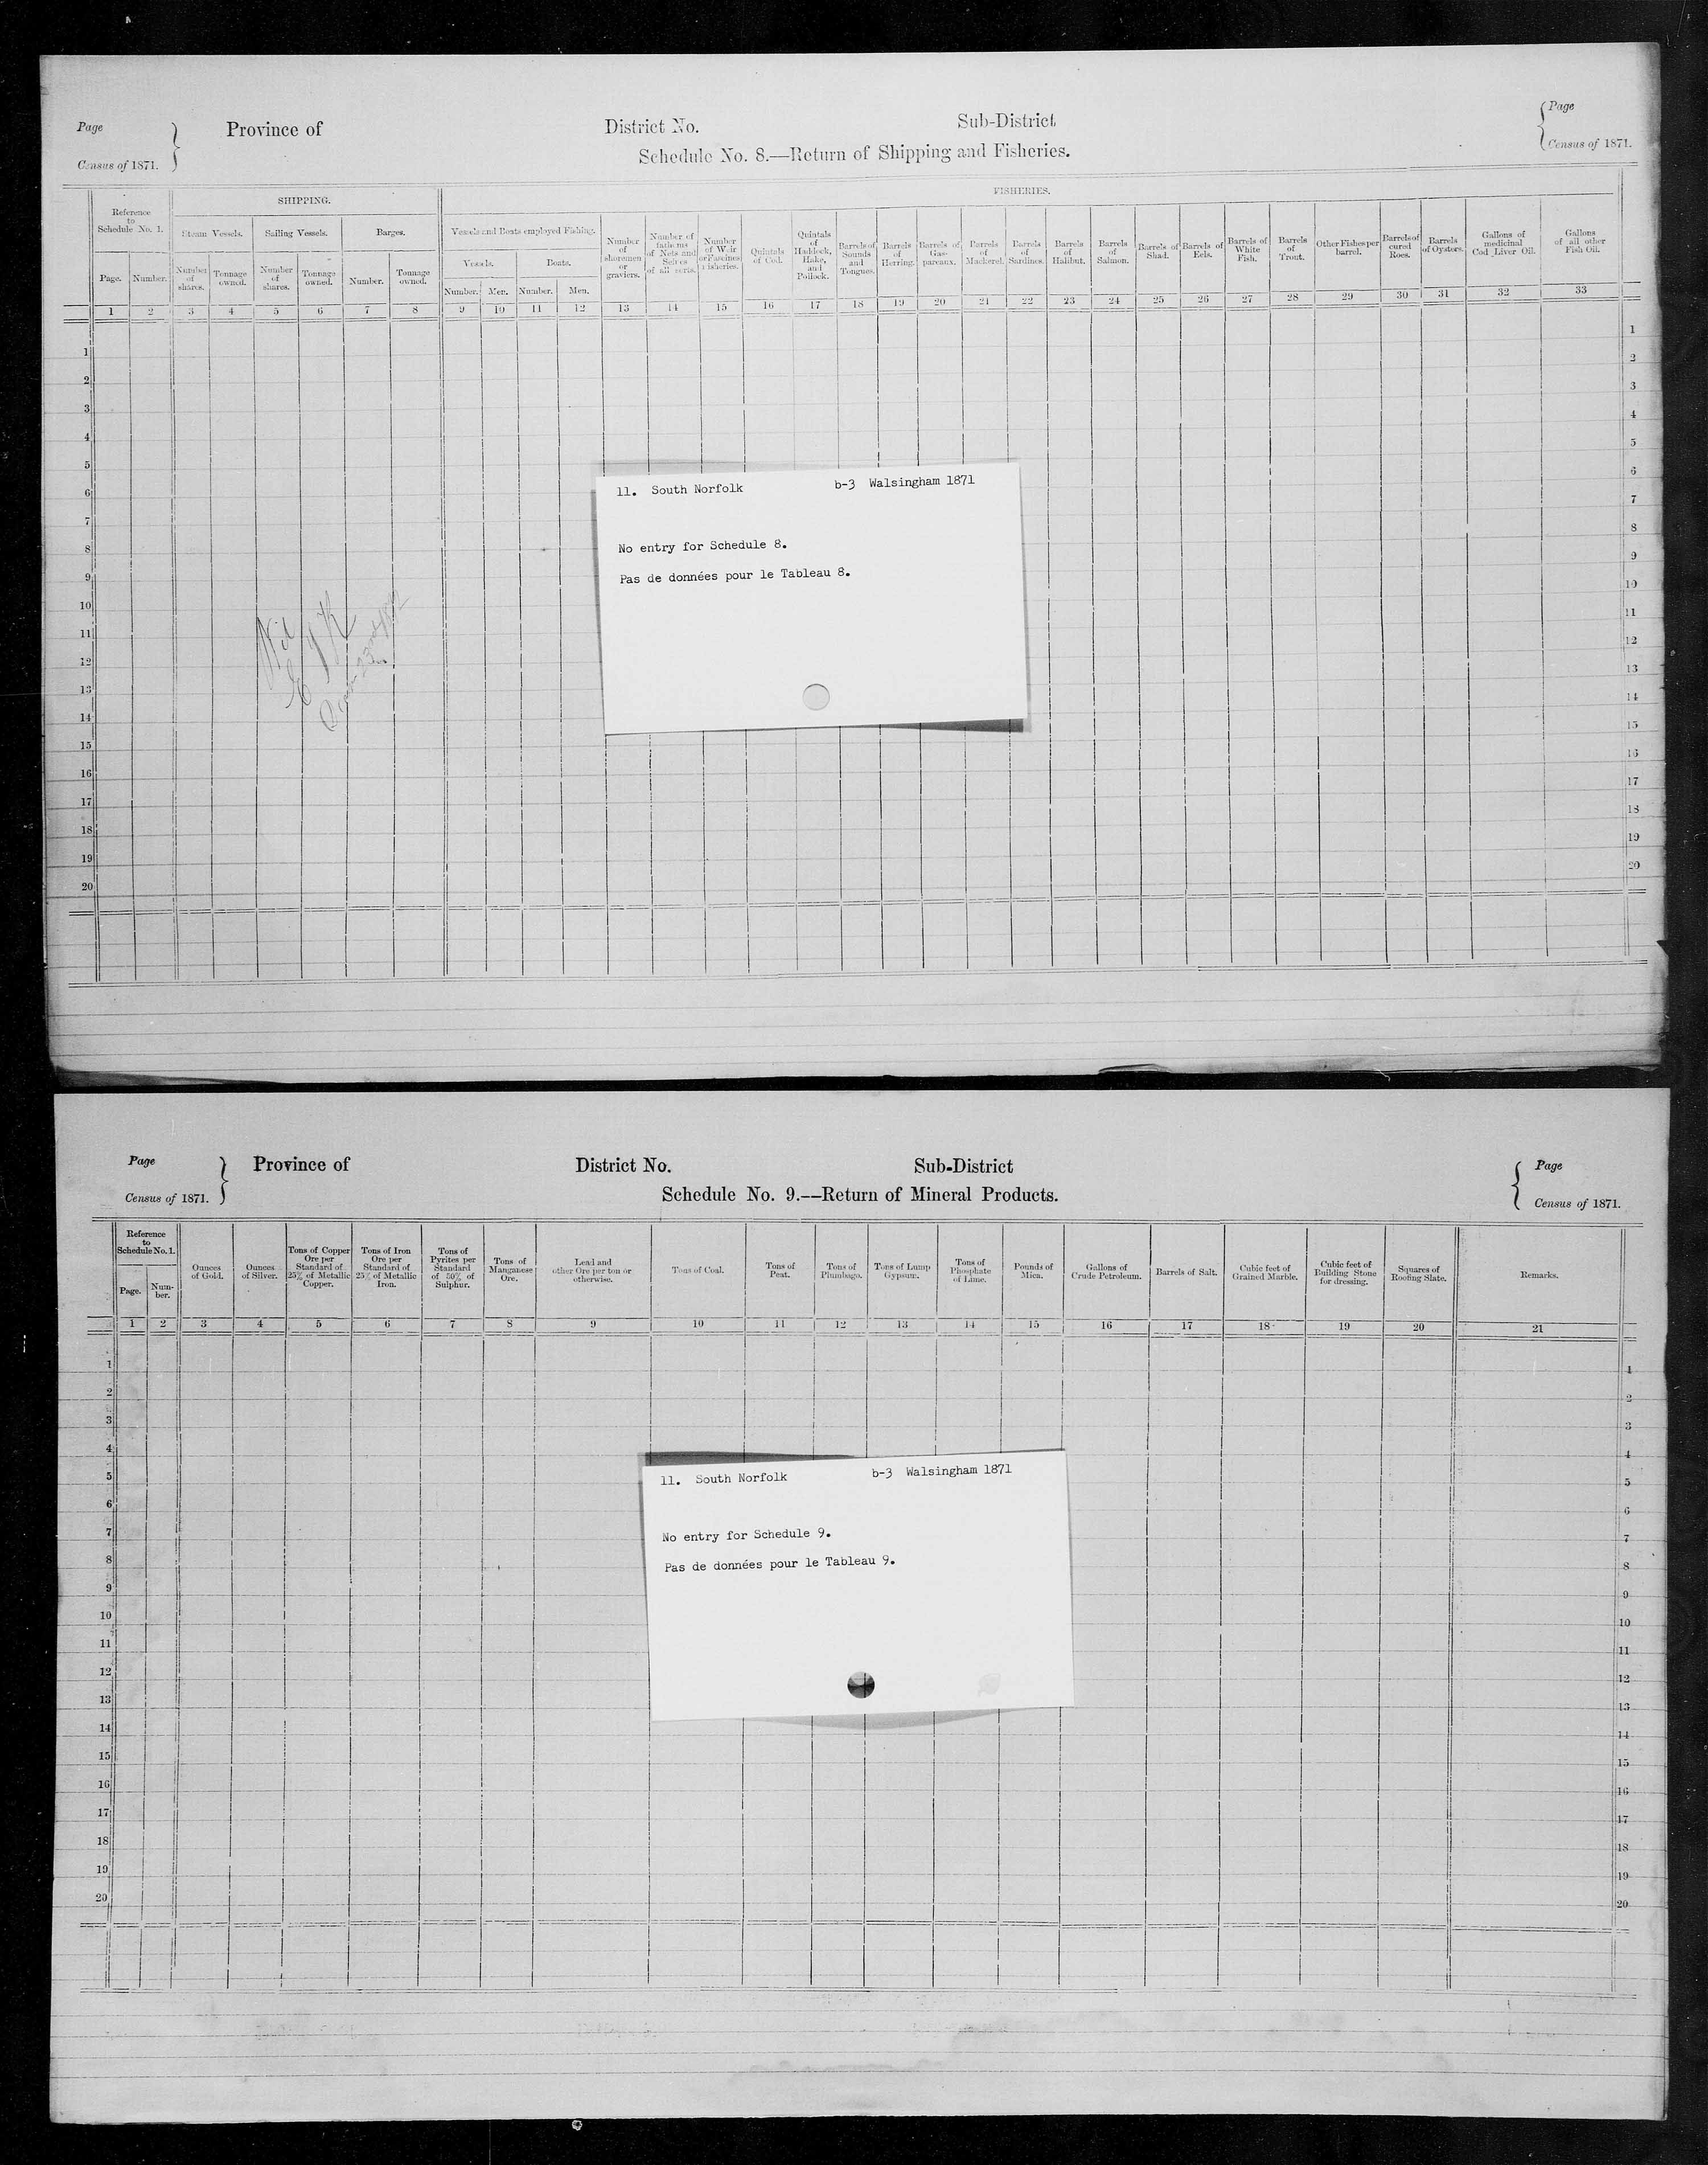 Title: Census of Canada, 1871 - Mikan Number: 142105 - Microform: c-9907